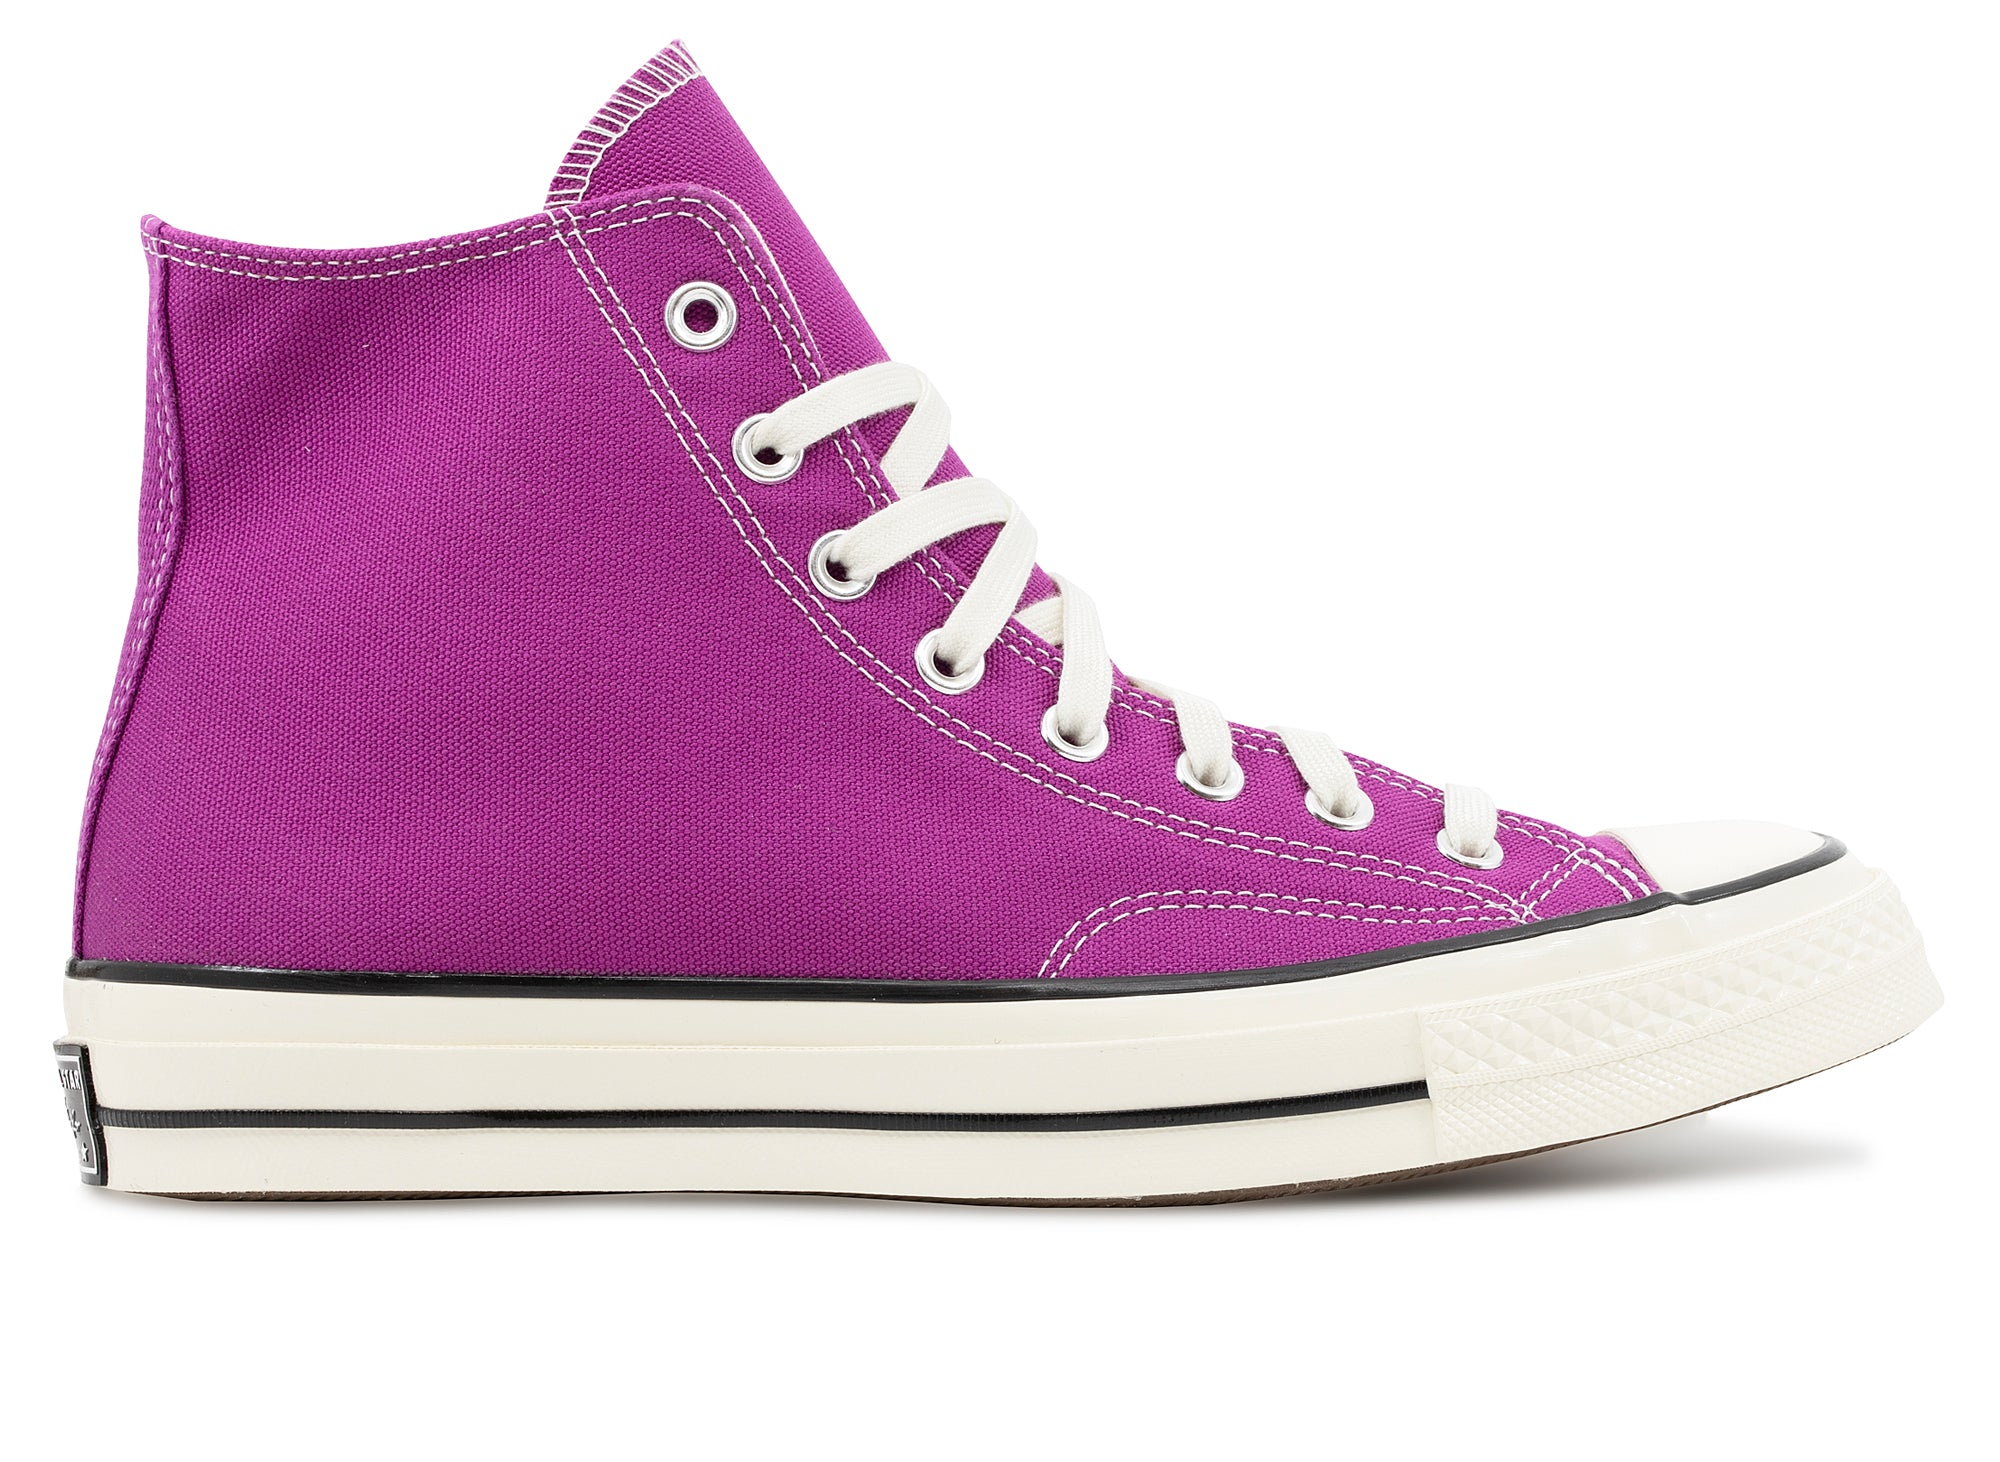 Converse Chuck 70 Hi in Purple